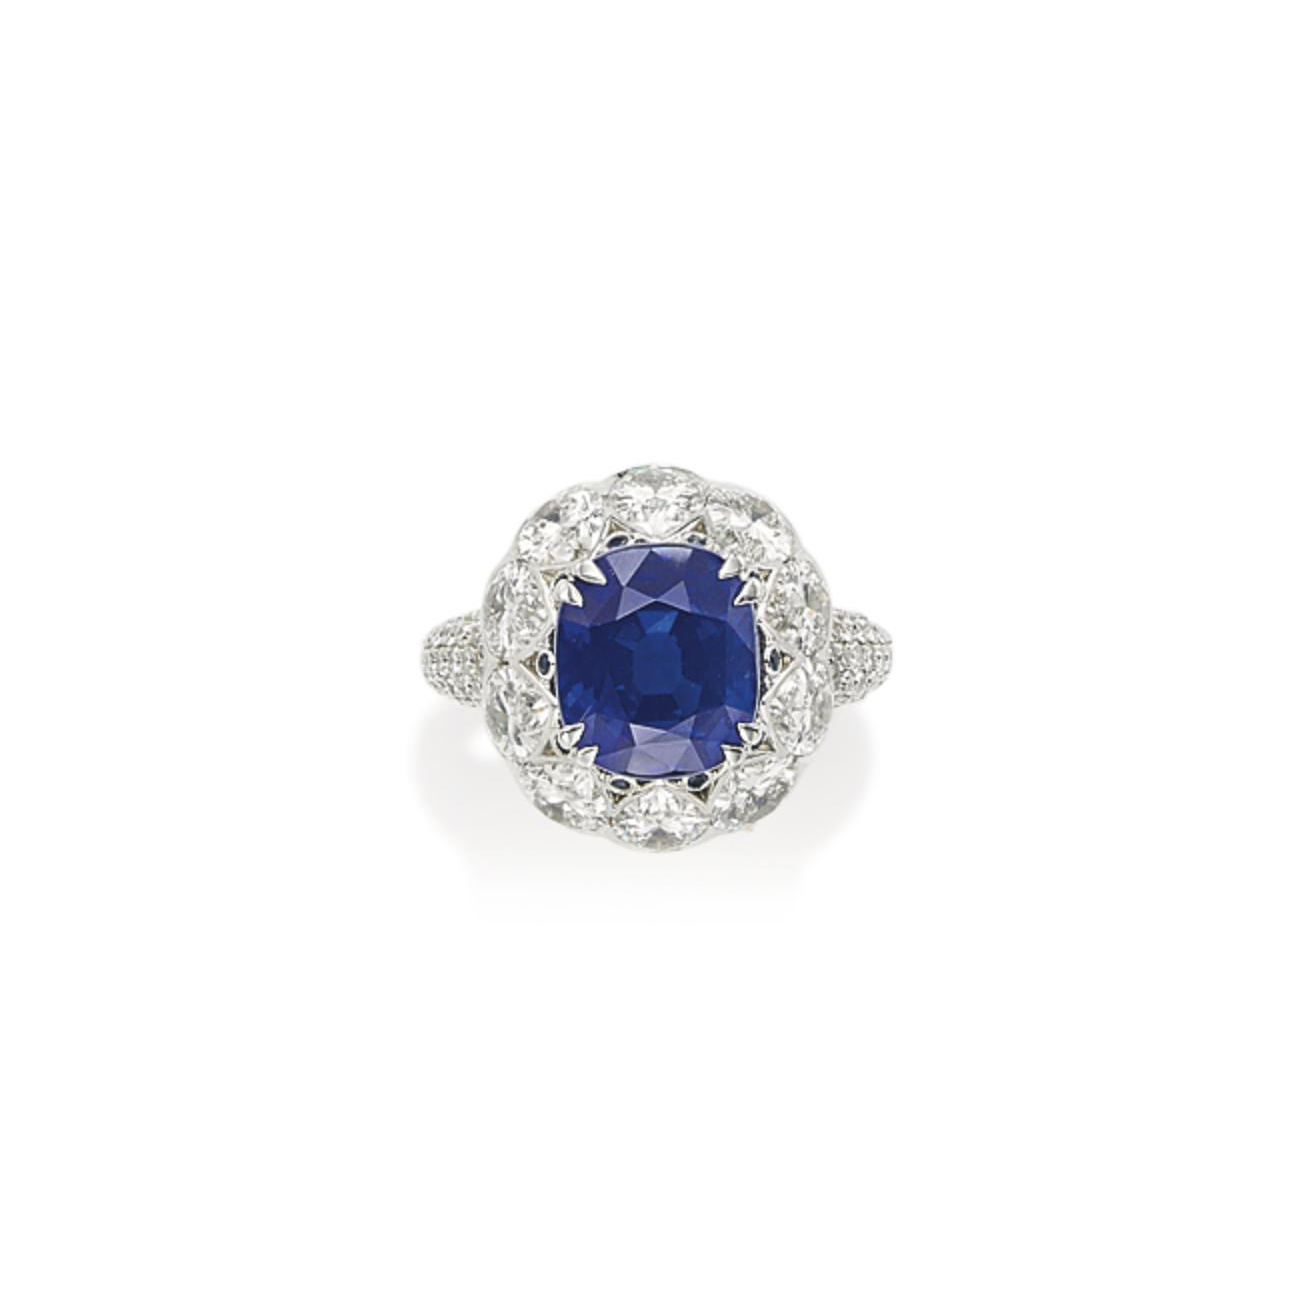 A SAPPHIRE AND DIAMOND RING, BY DAVID MORRIS